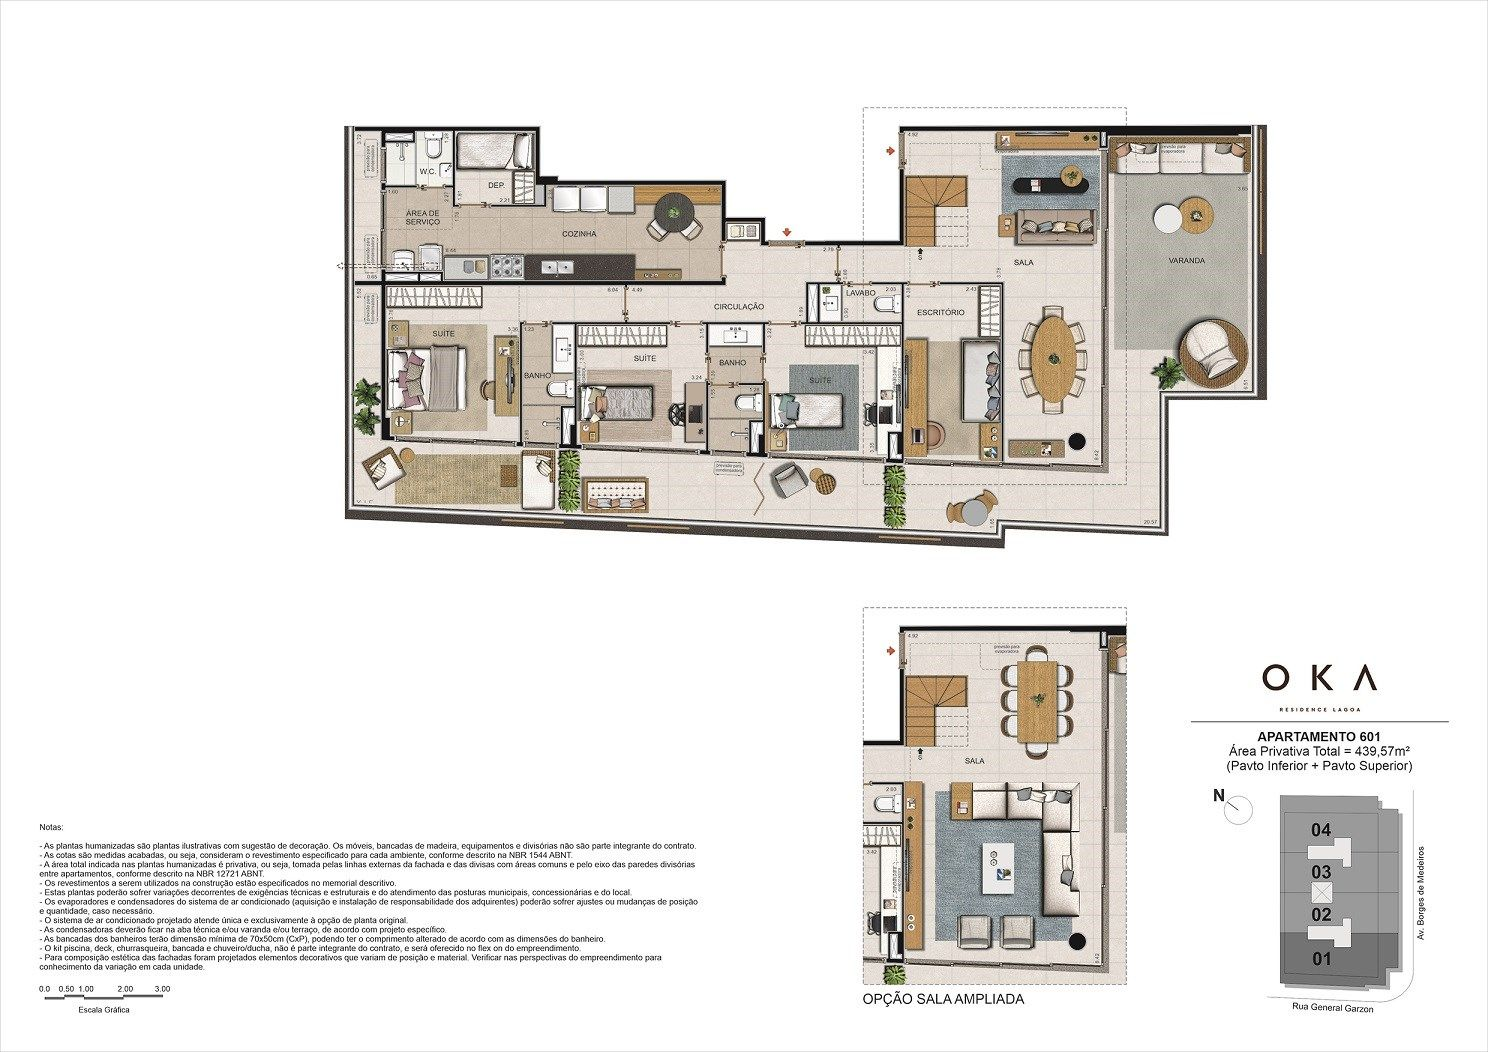 Planta do OKA Residence Lagoa. floorplan